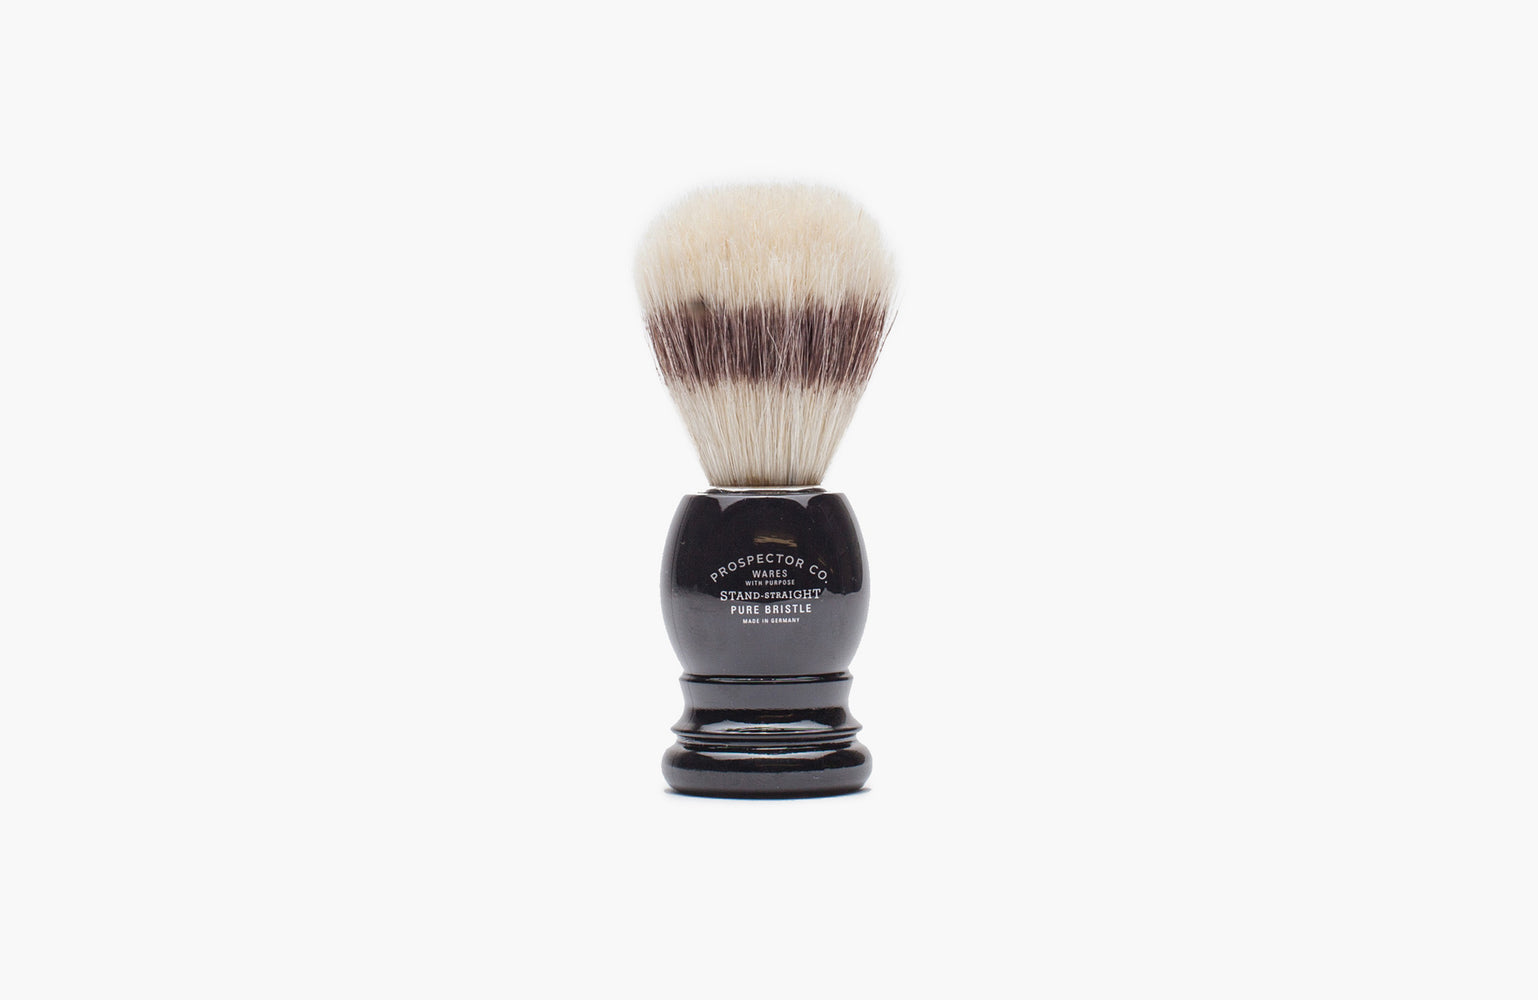 Prospector & Co. / Pure Bristle Shaving Brush in Black